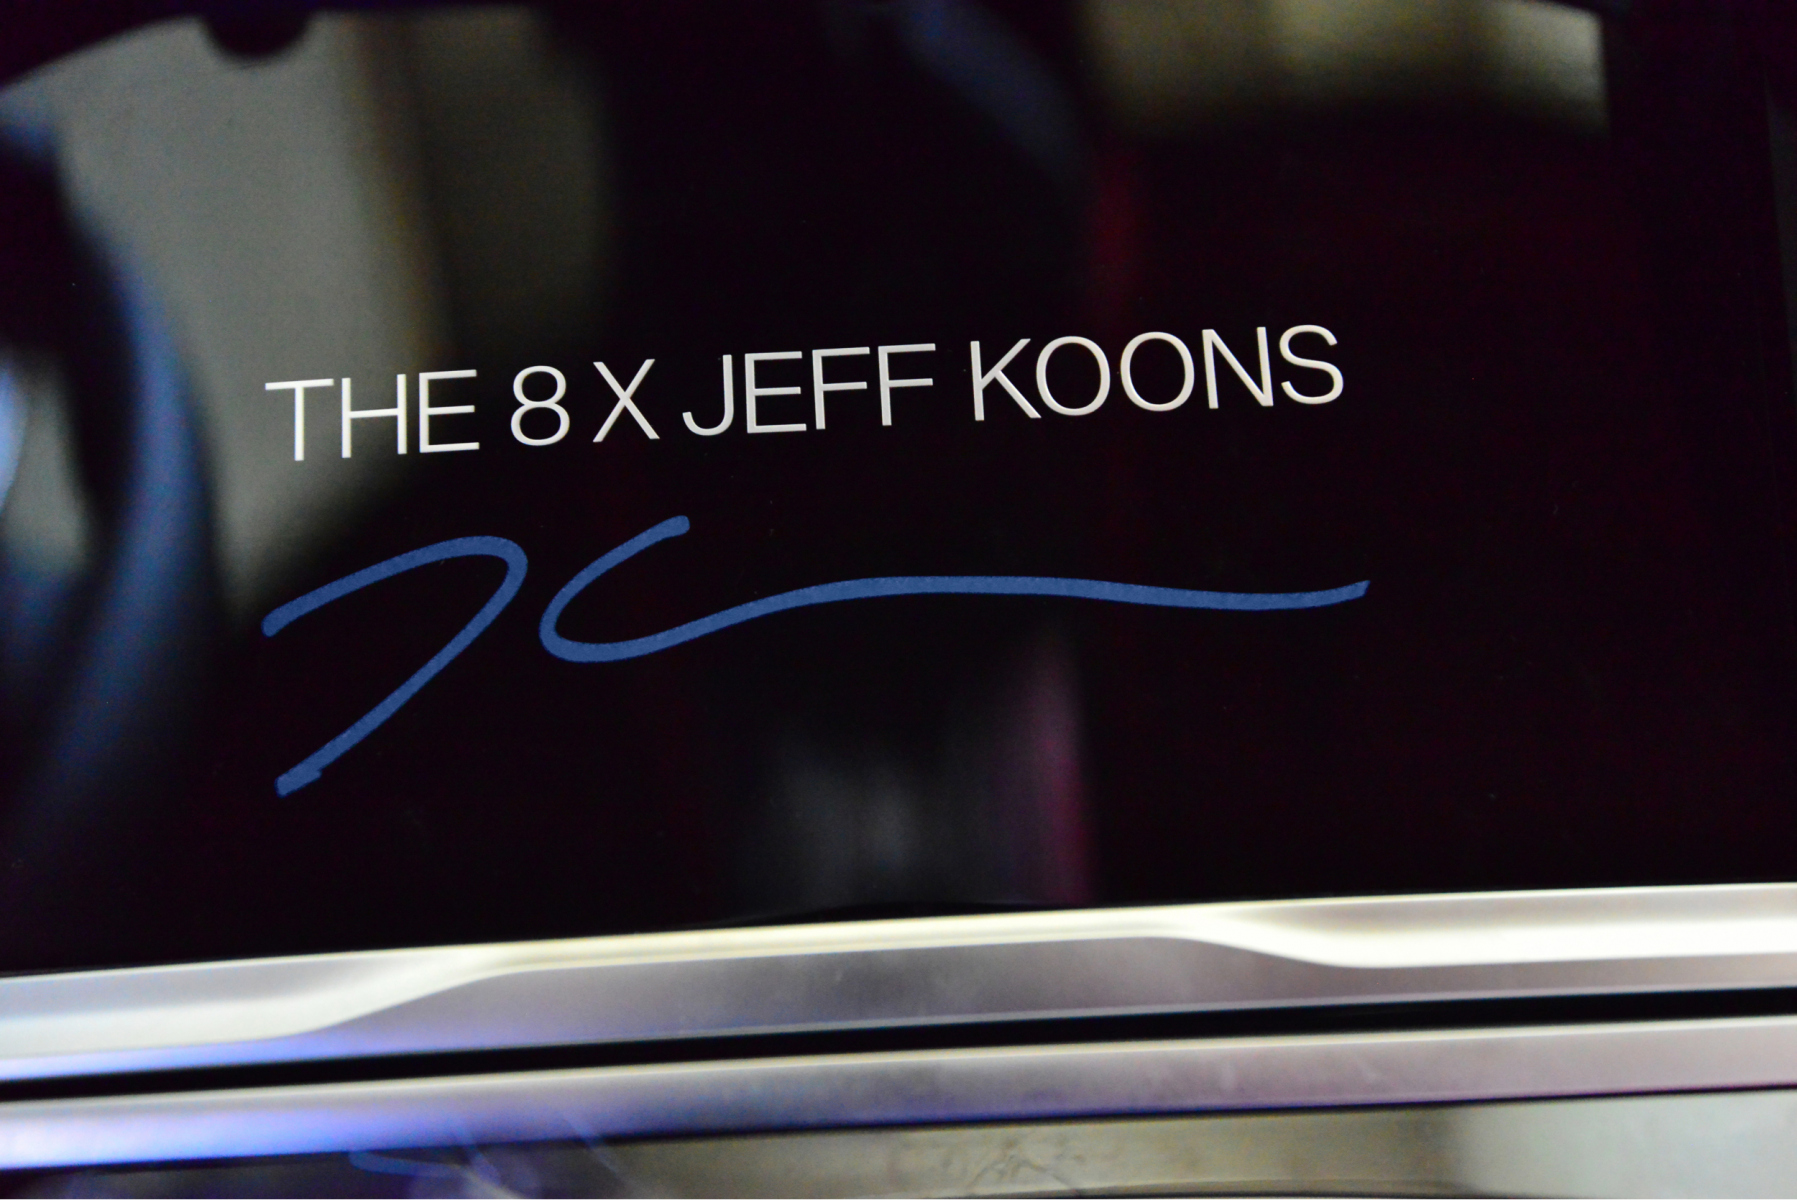 Jeff Koons X BMW - The artist creates a special edition of the BMW 8 Series Gran Coupe